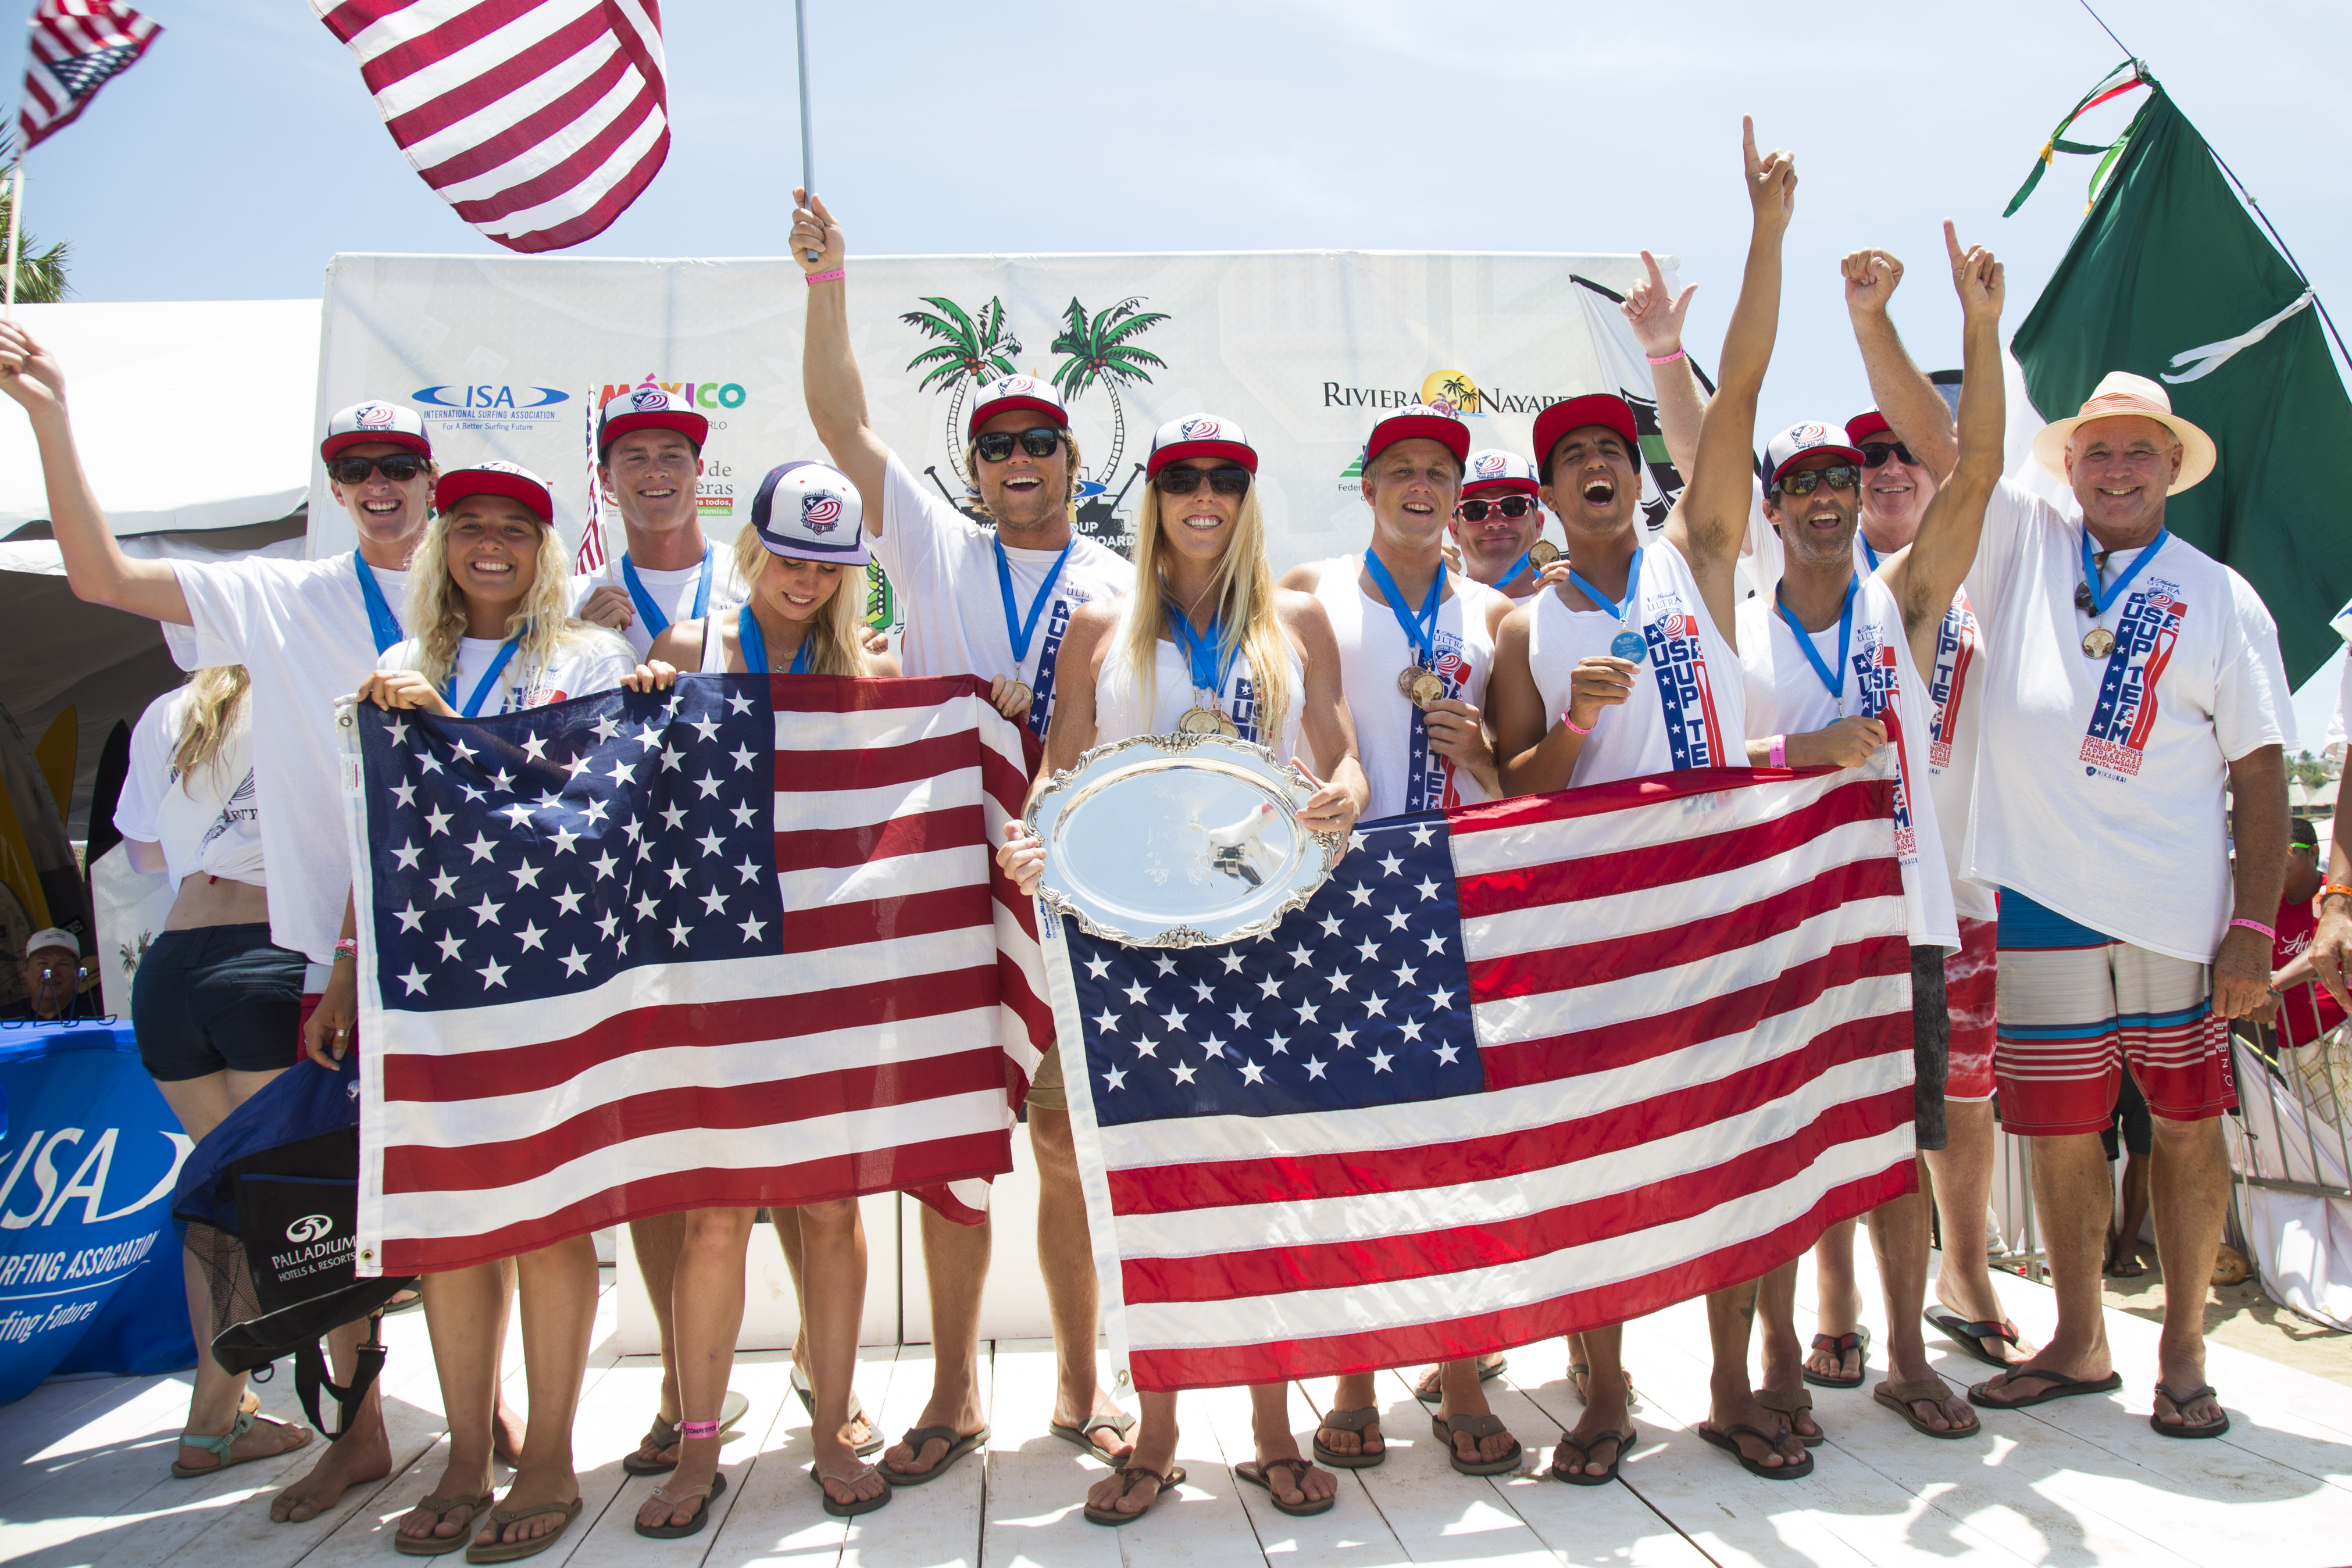 Team USA celebrates at the podium after winning the World Team Champion Trophy and team gold medal at the 2015 ISA World Stand-up Paddle (SUP) and Paddleboard Championship in Sayulita, Mexico. Photo: ISA/Ben Reed